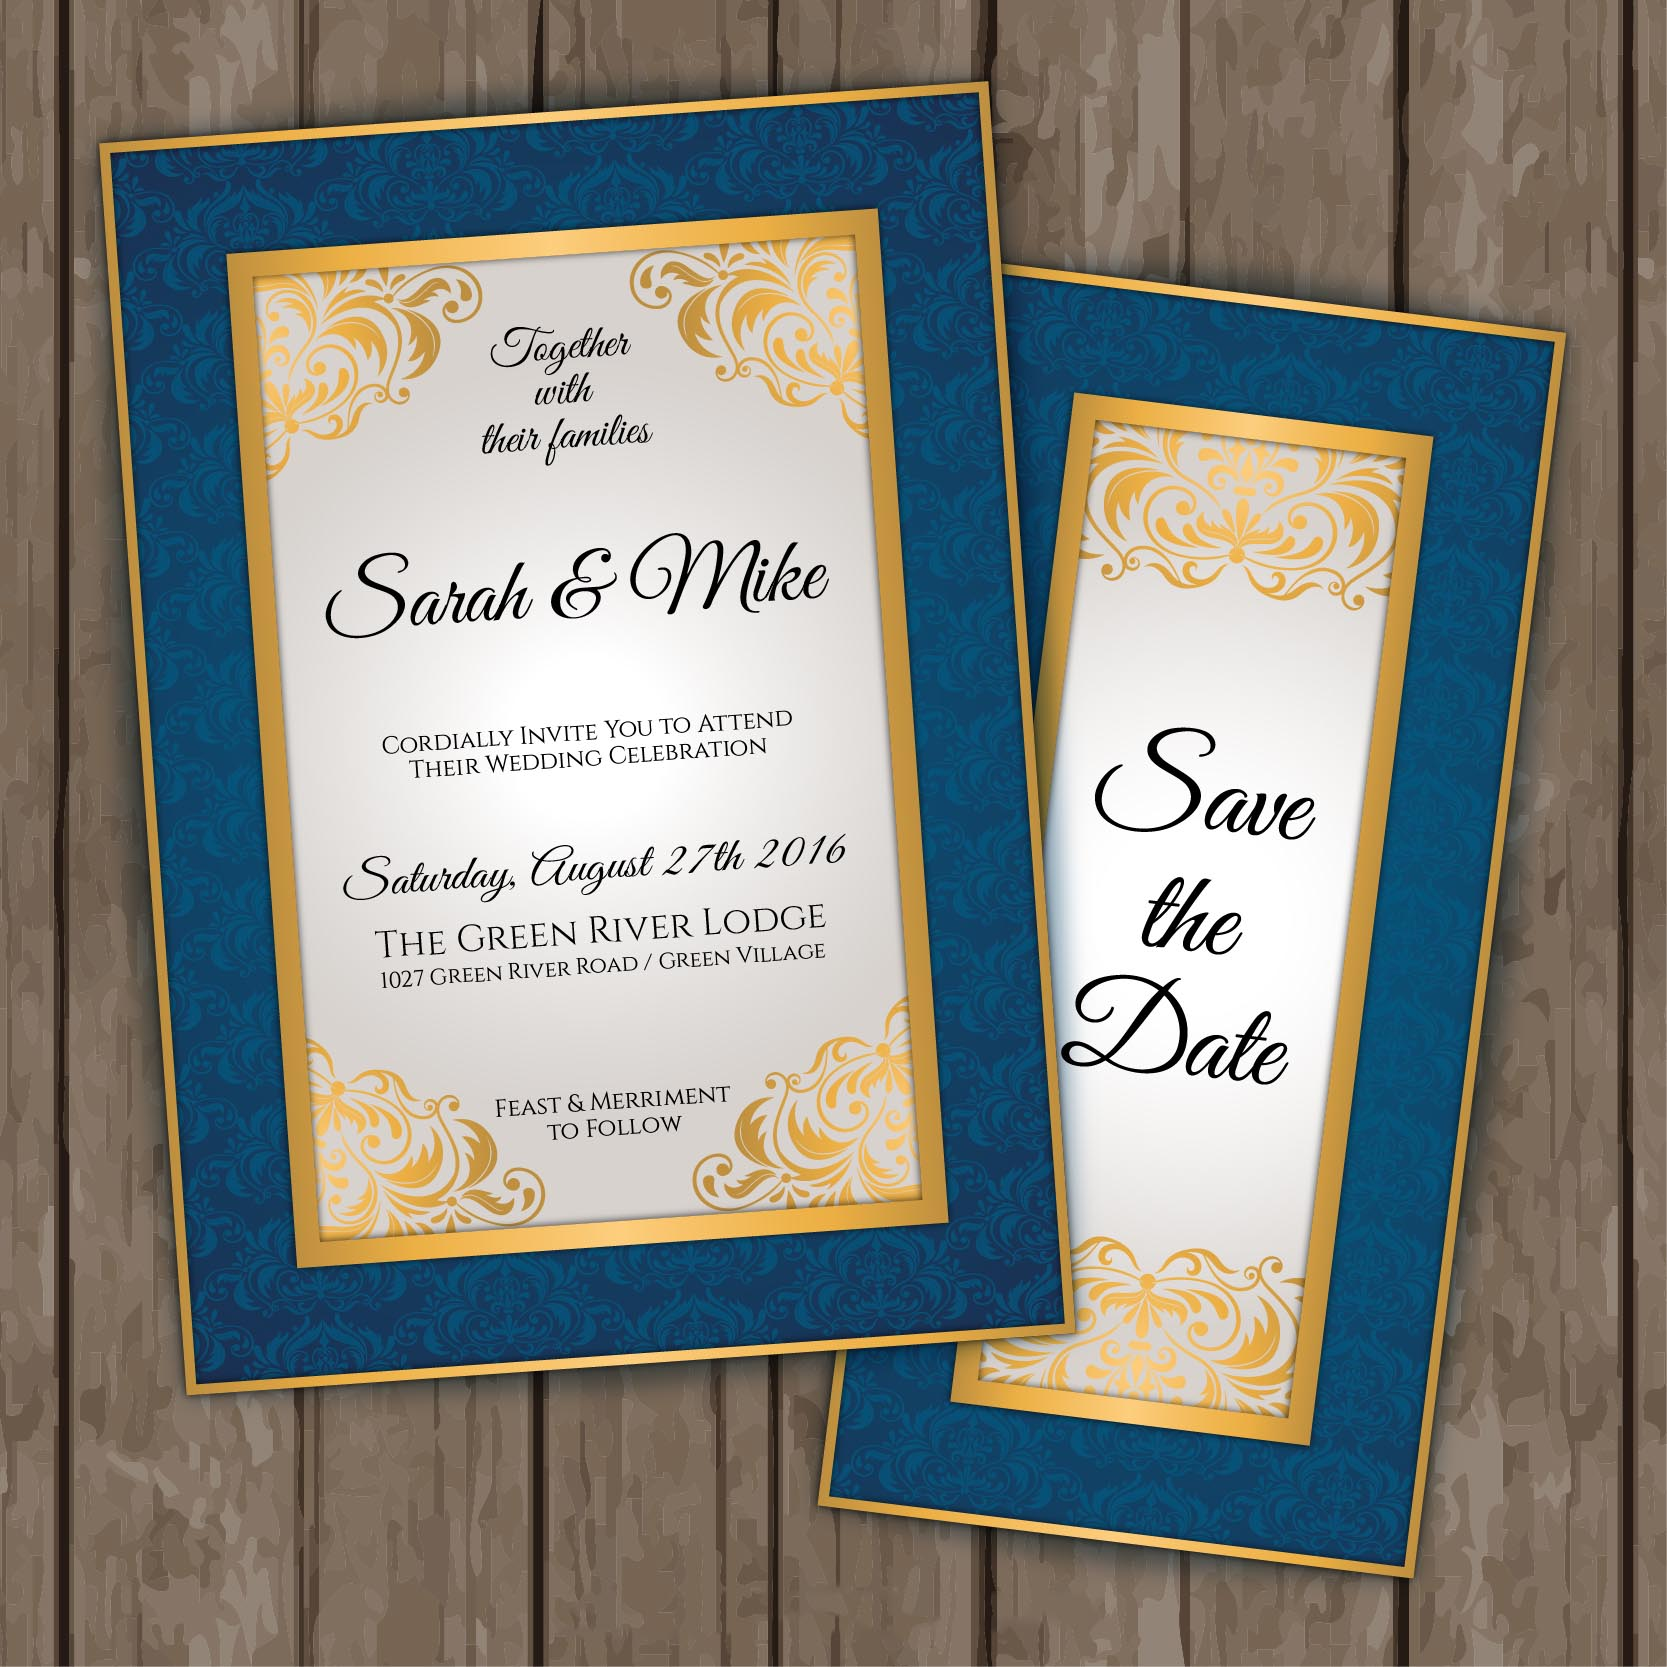 Design Print Services Invitations Business Cards